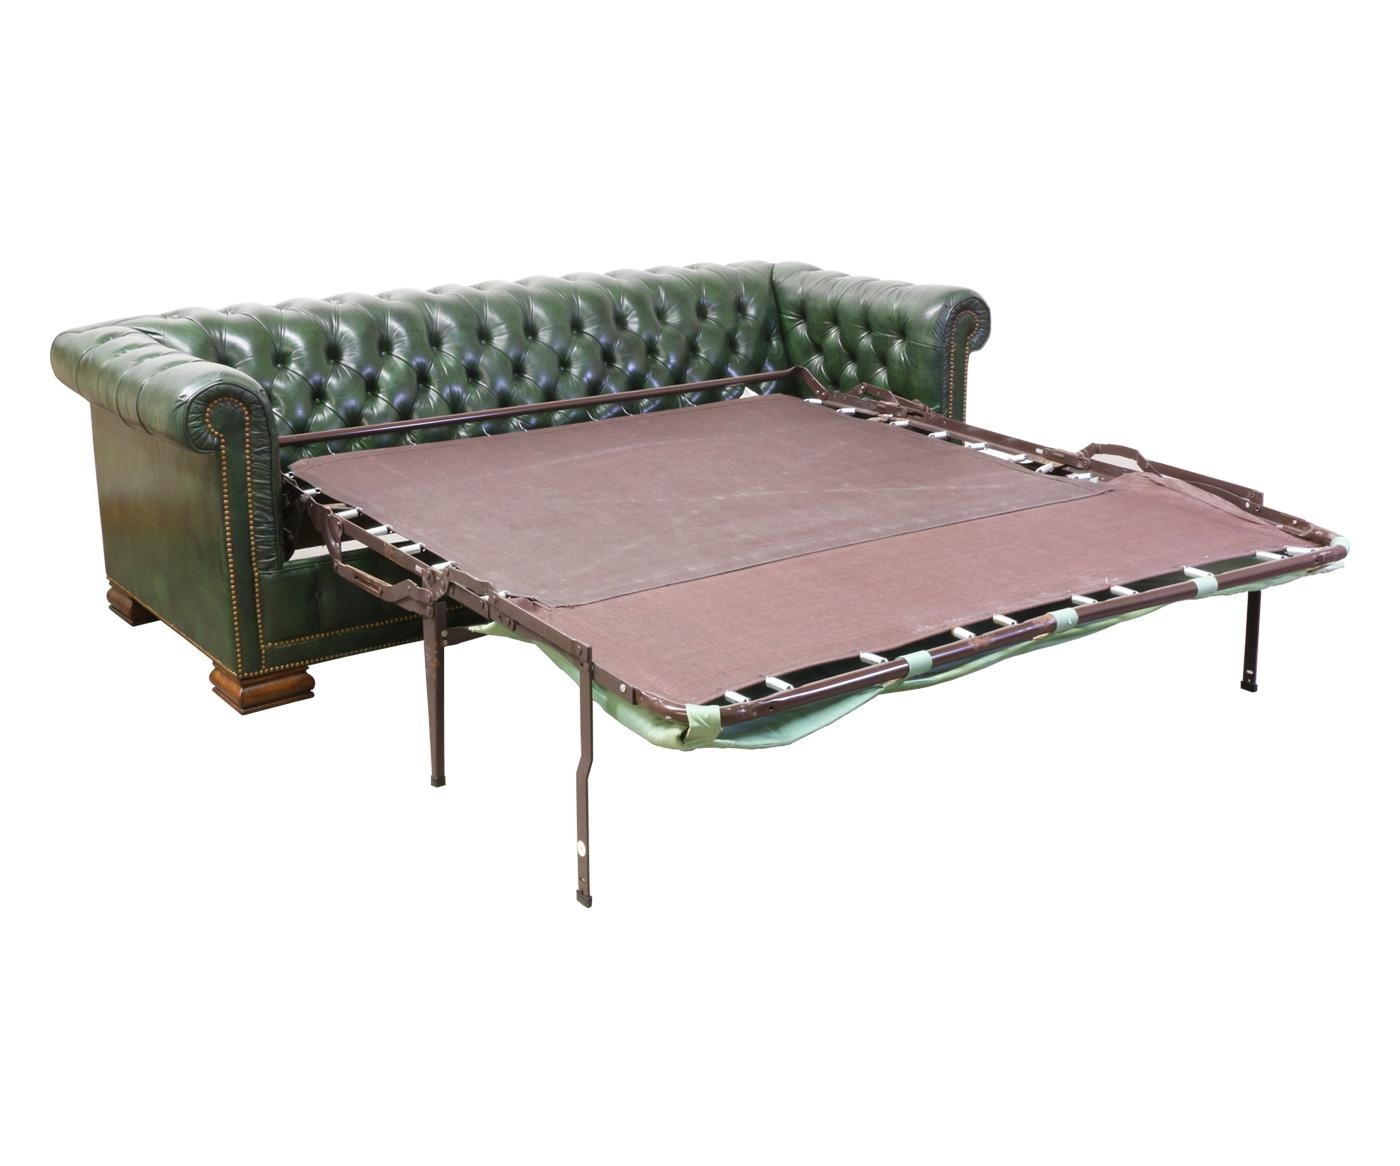 Vintage Green Leather Chesterfield Sofa Bed – Danish Modern L (Image 16 of 20)